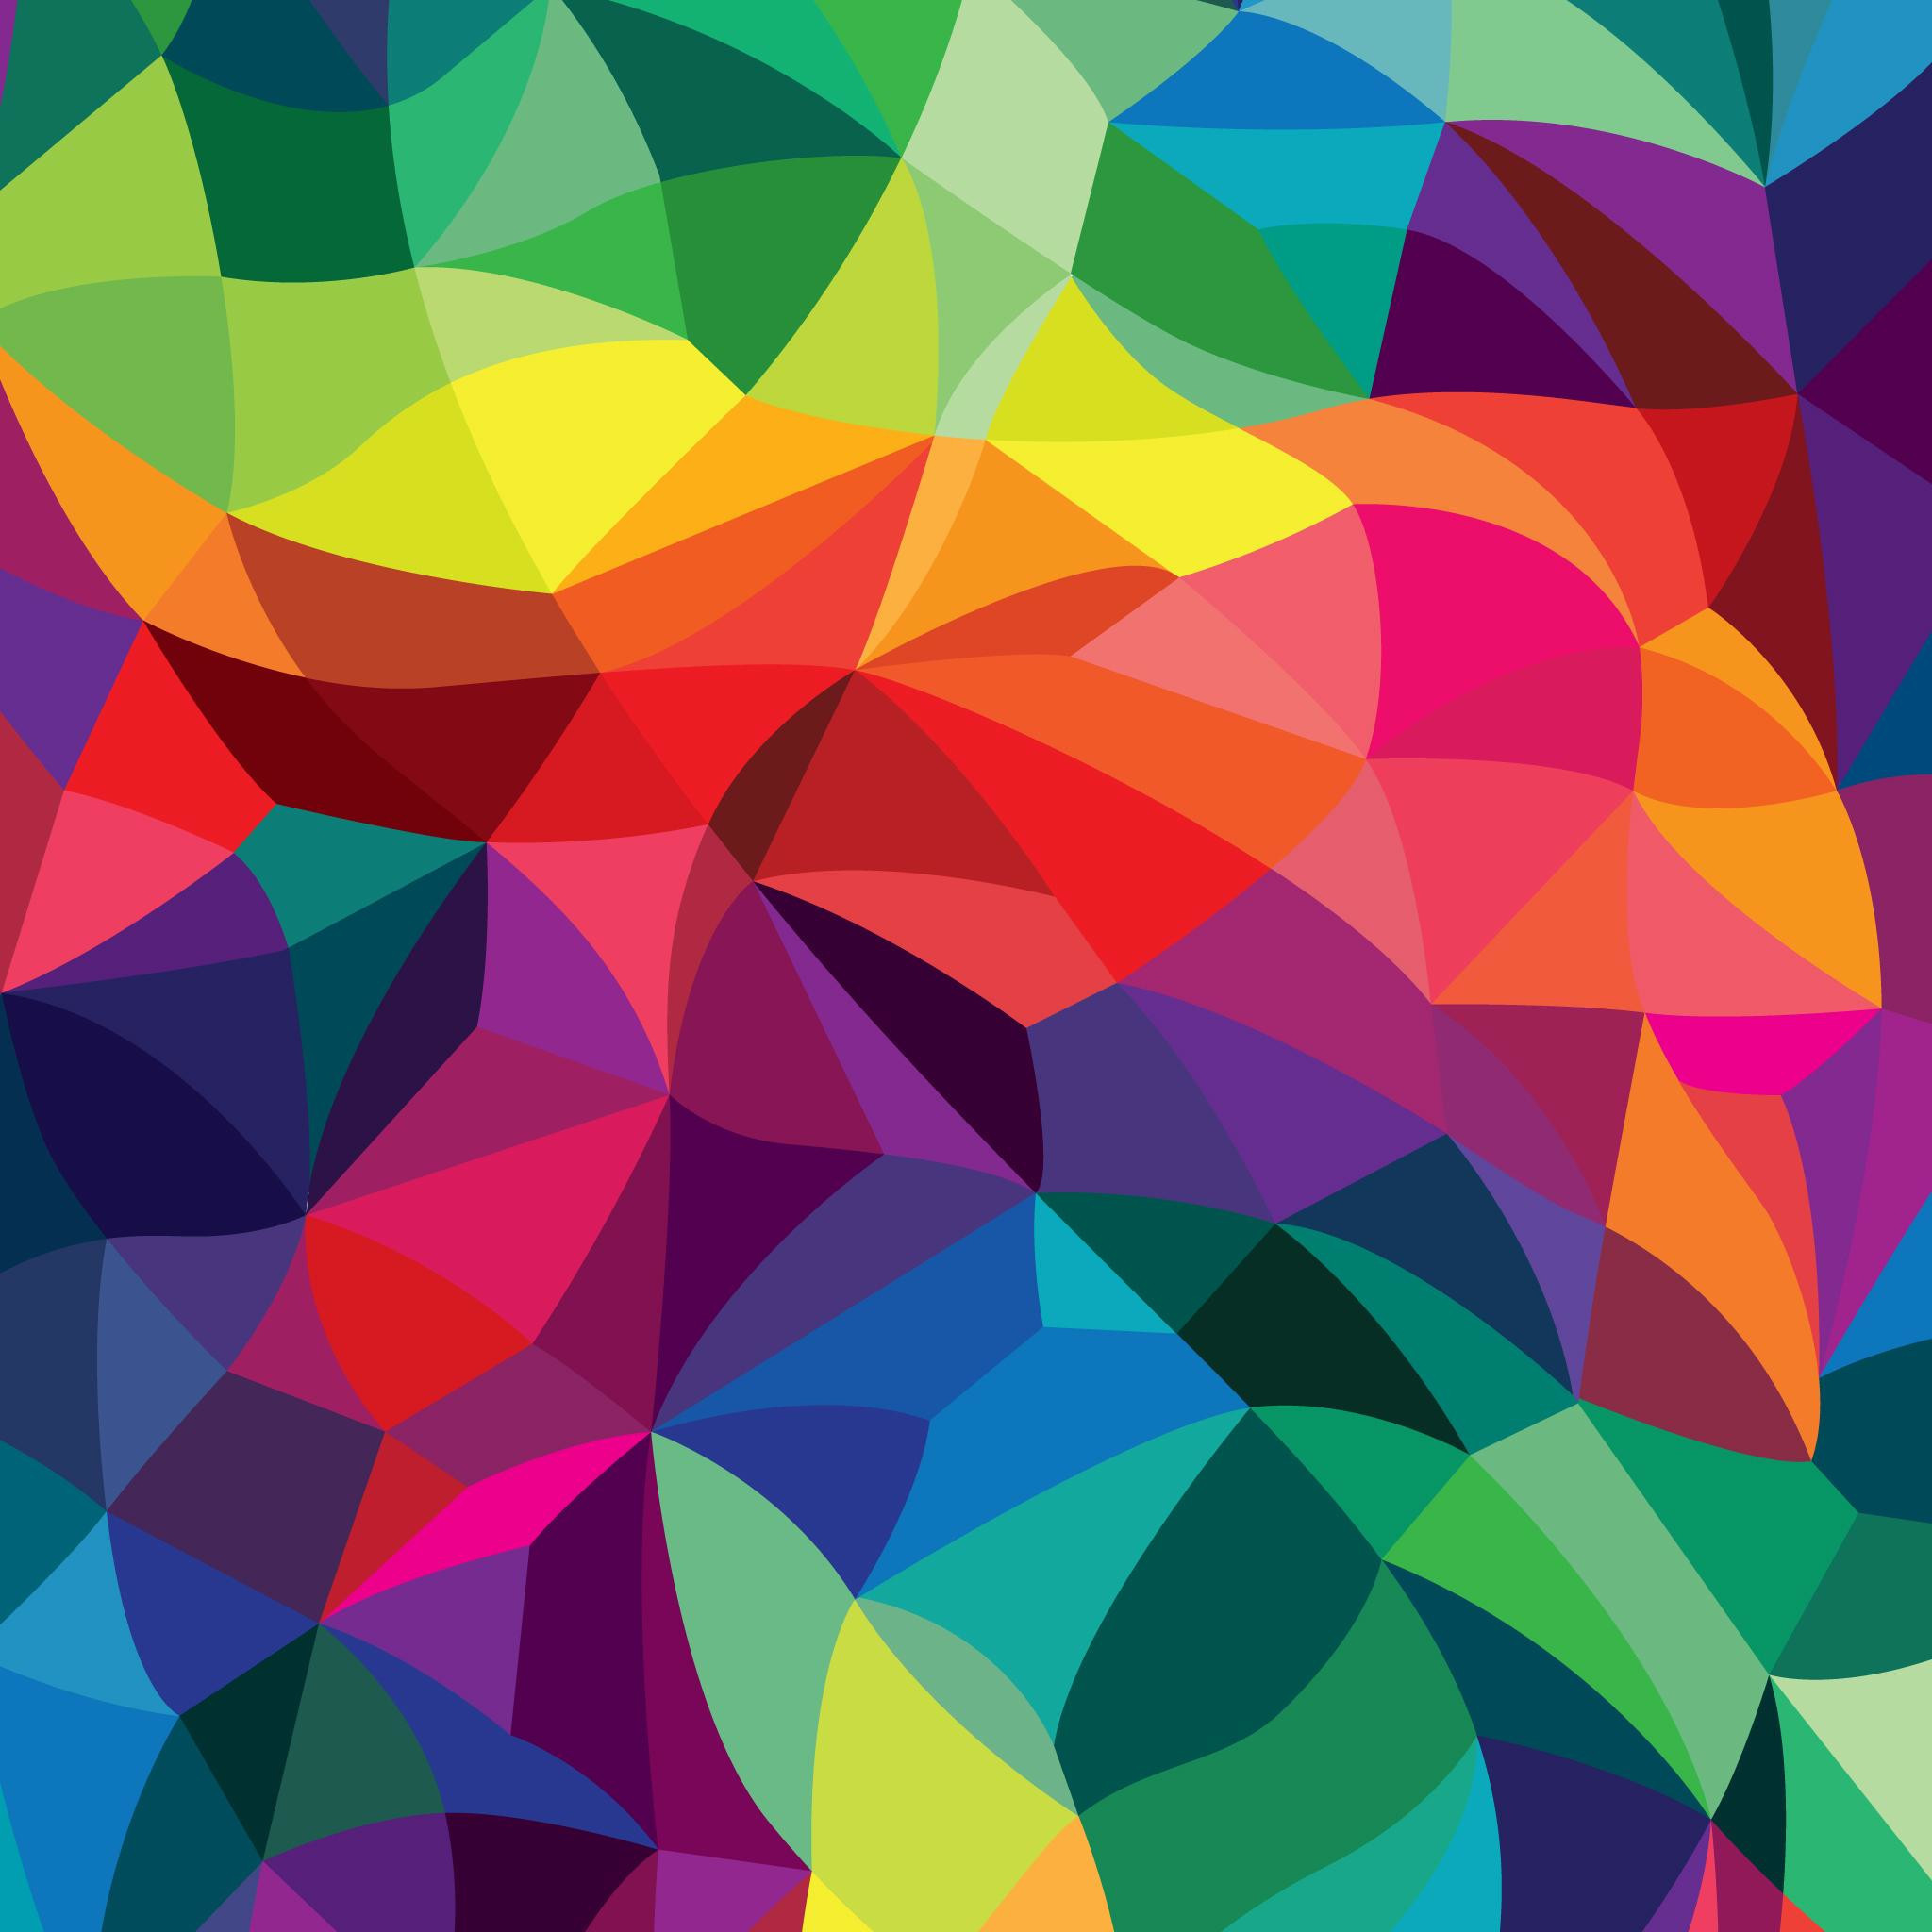 2048x2048, Colors Hd Wallpaper   Data Id 295280   Data - Abstract Shapes And Colors - HD Wallpaper